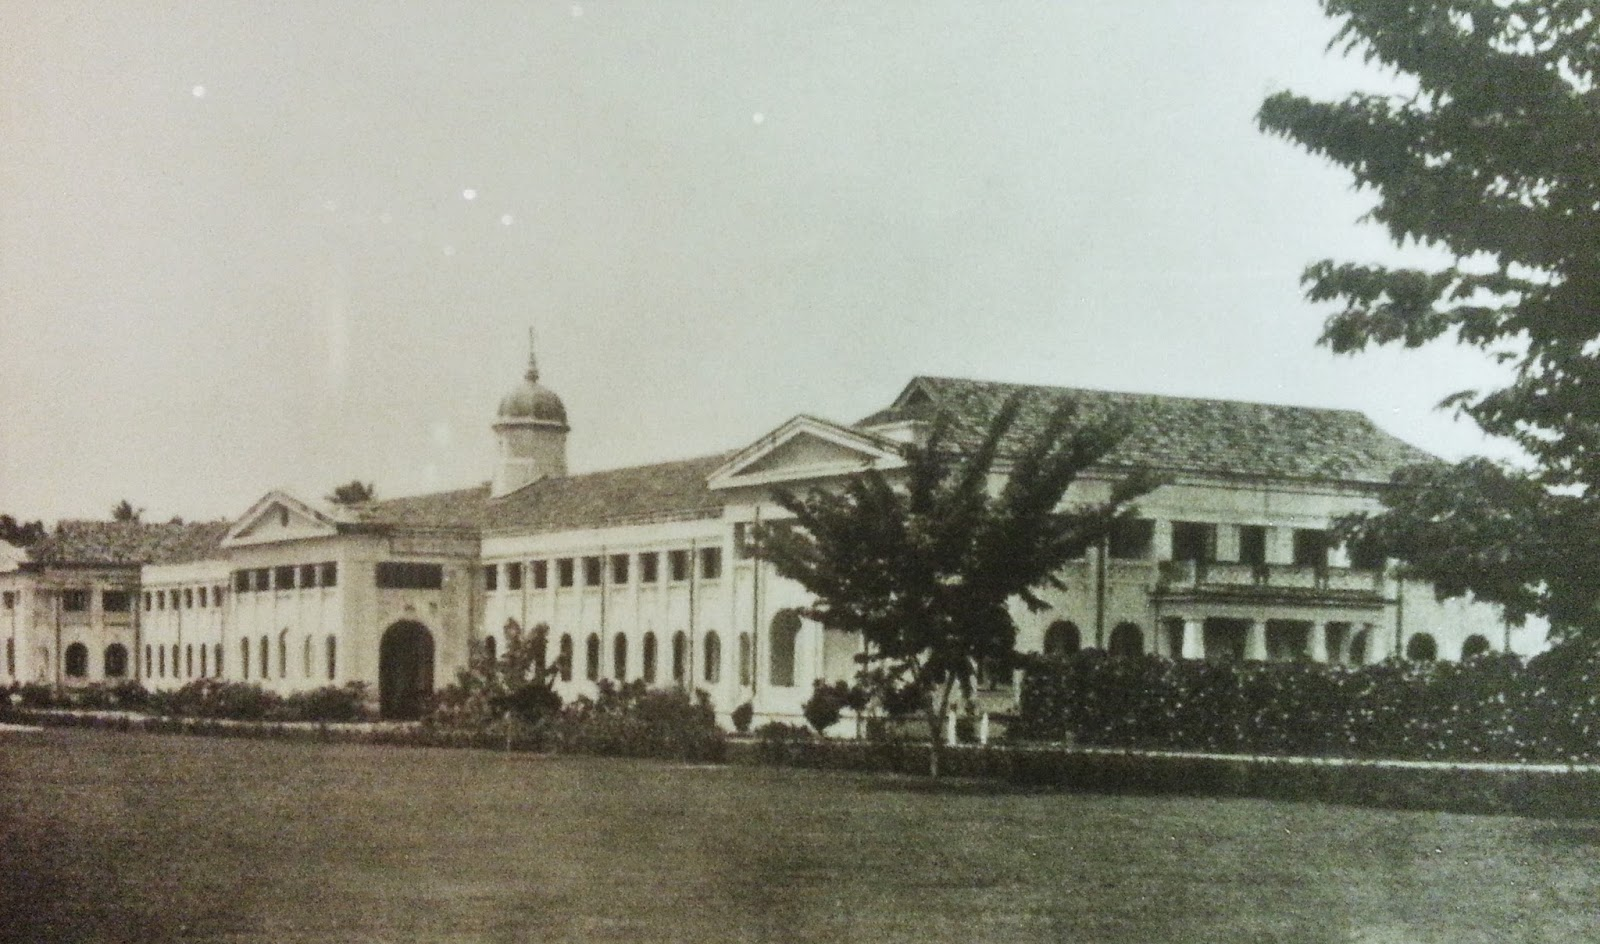 Penang Free School at Green Lane, Penang in 1932 | The First 100 years of Penang Free School blog